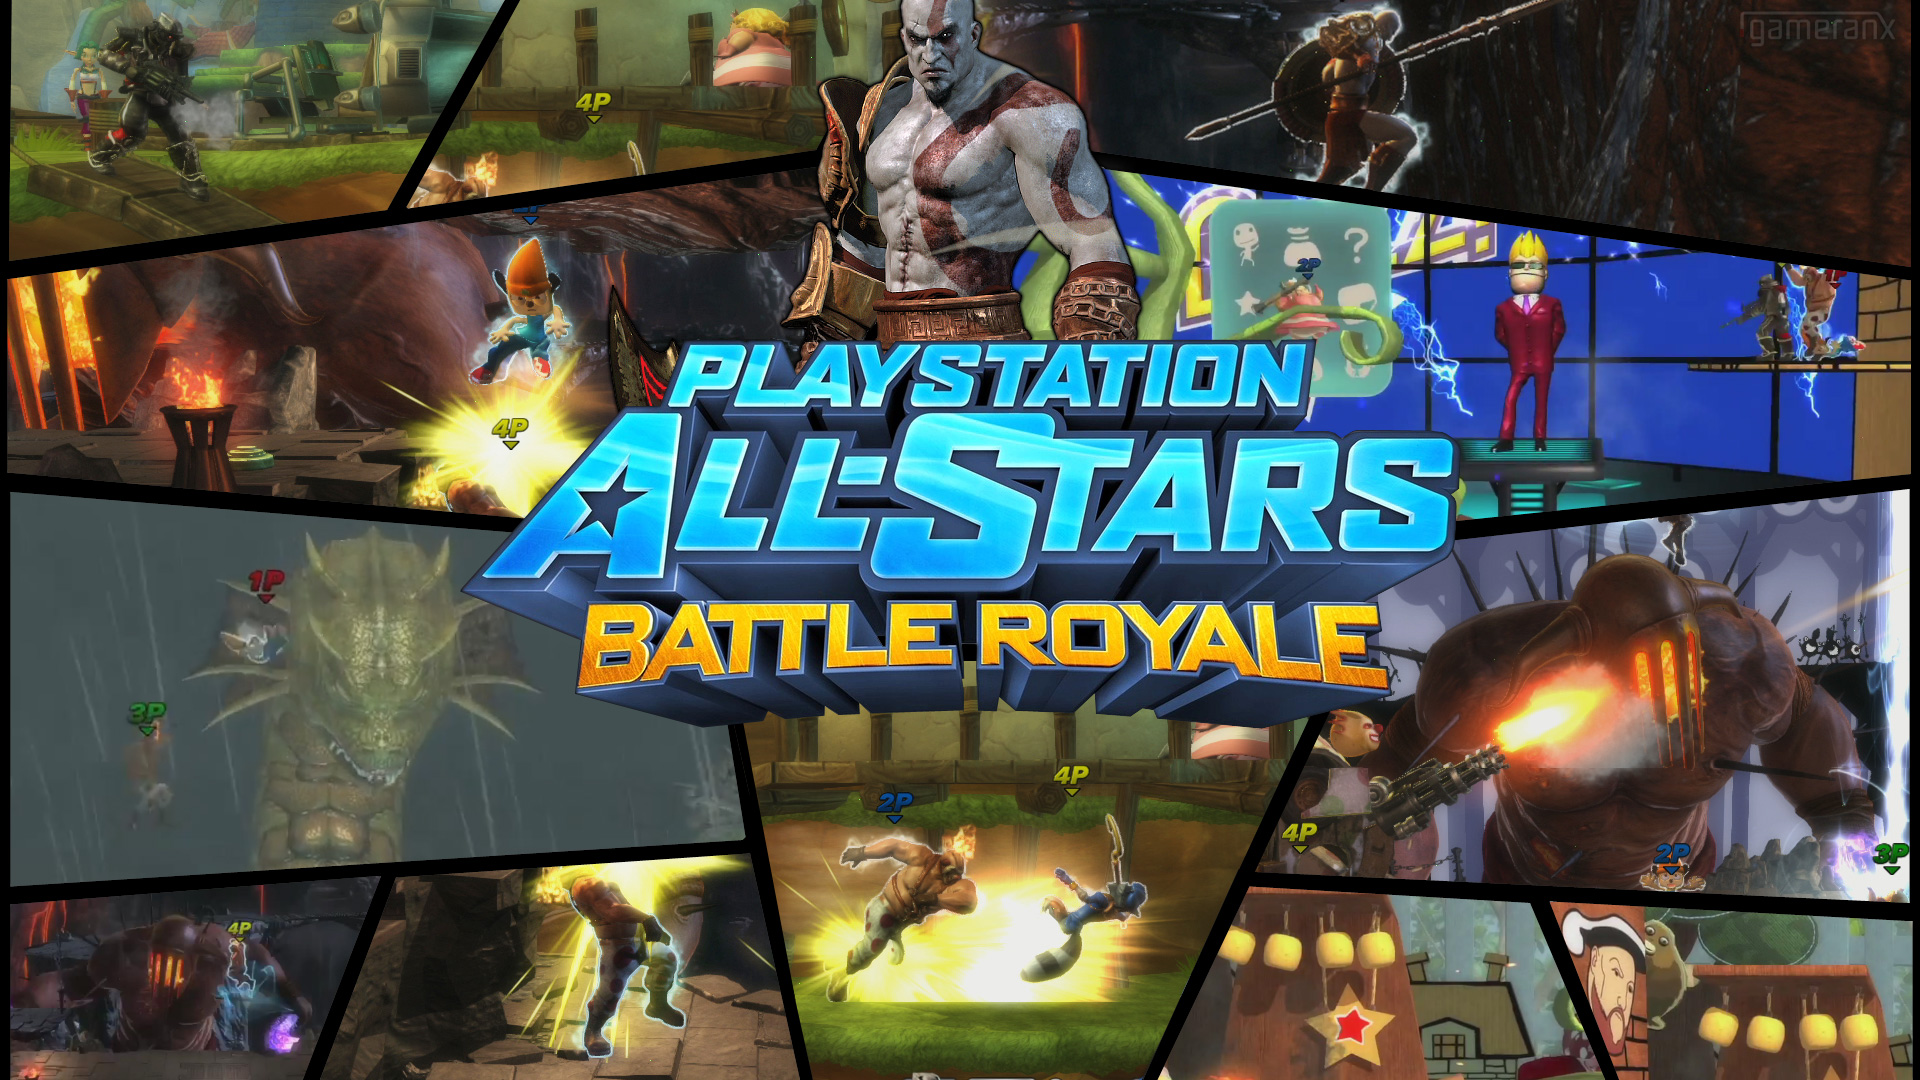 PlayStation All Stars: Battle Royale Review: Don't Call it A Smash Bros. Clone